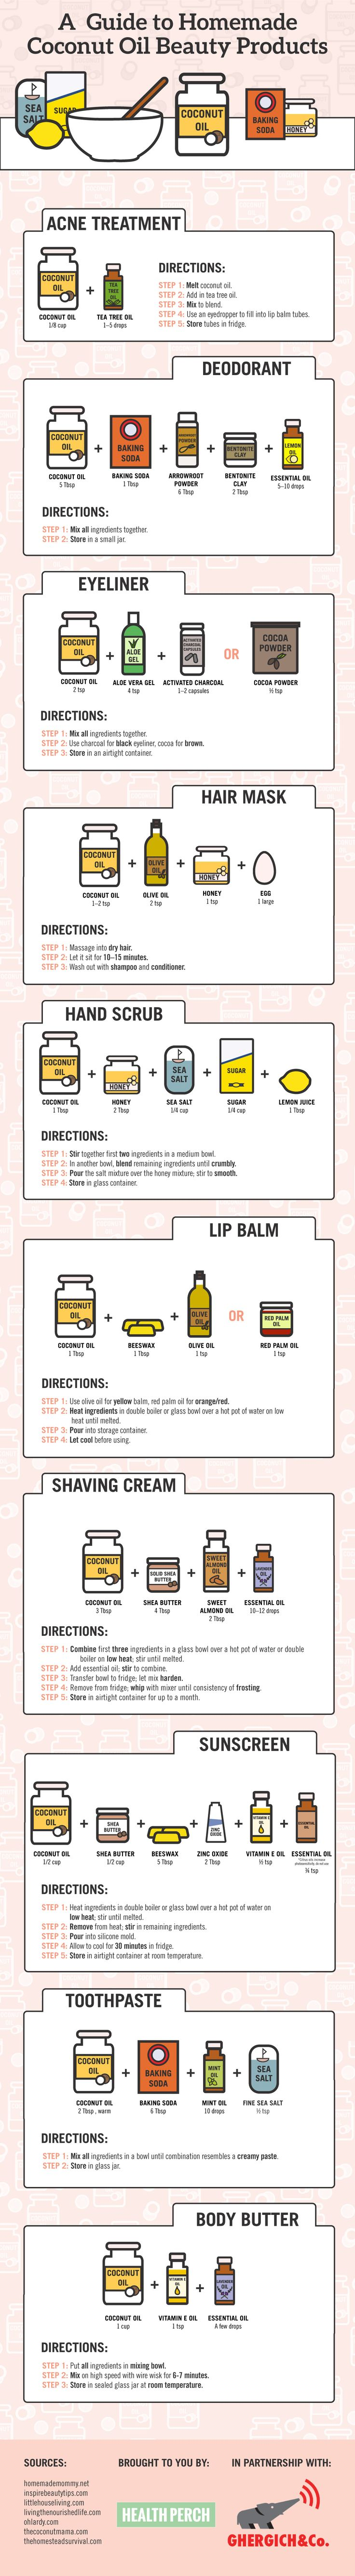 10 Recipes for Homemade Coconut Oil Beauty Products